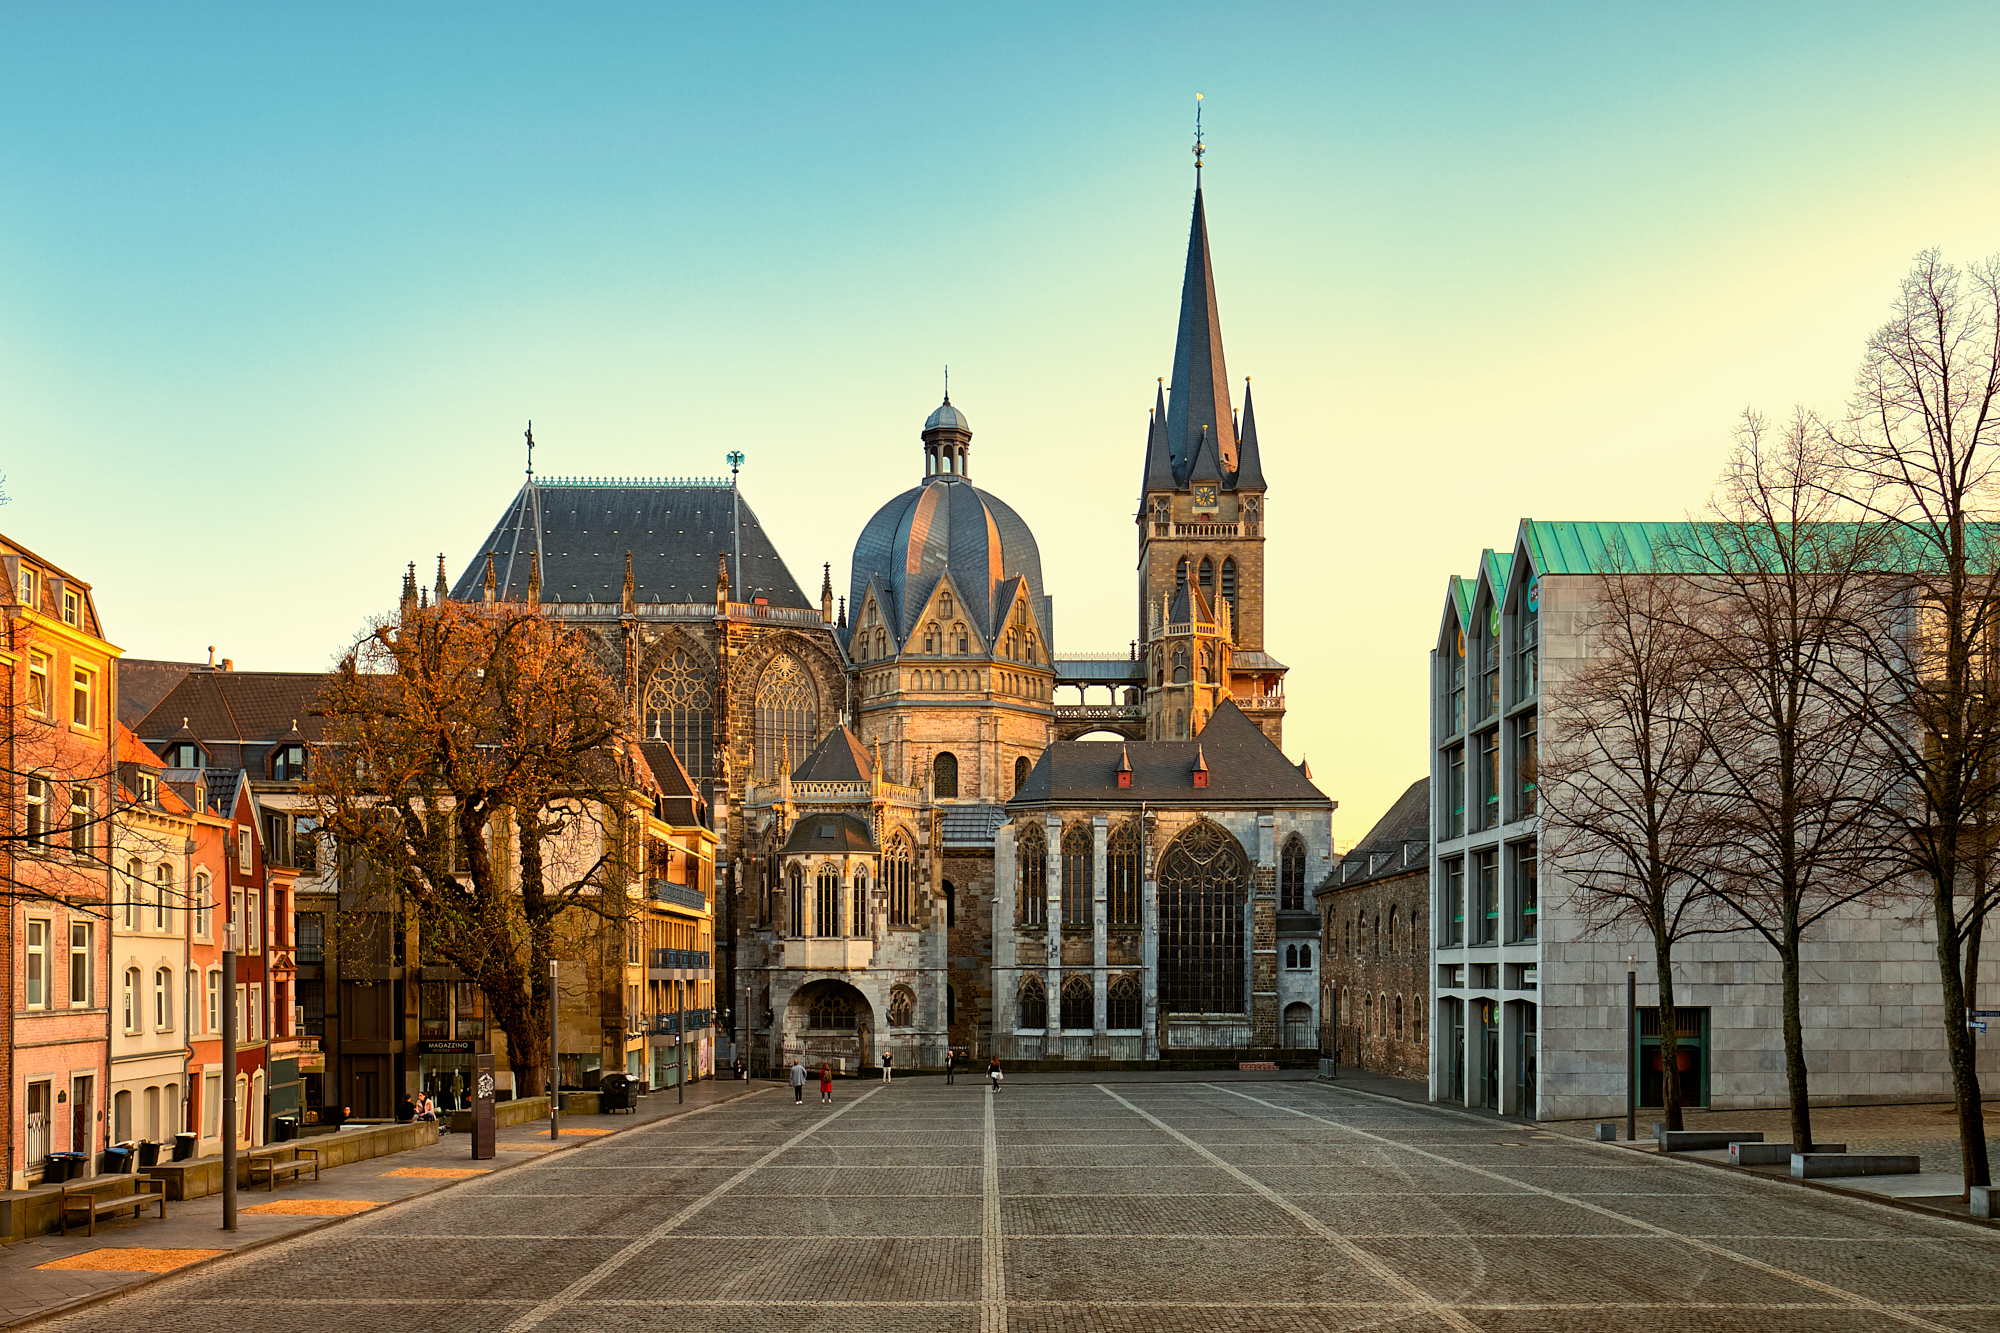 Aachener Dom, Germany